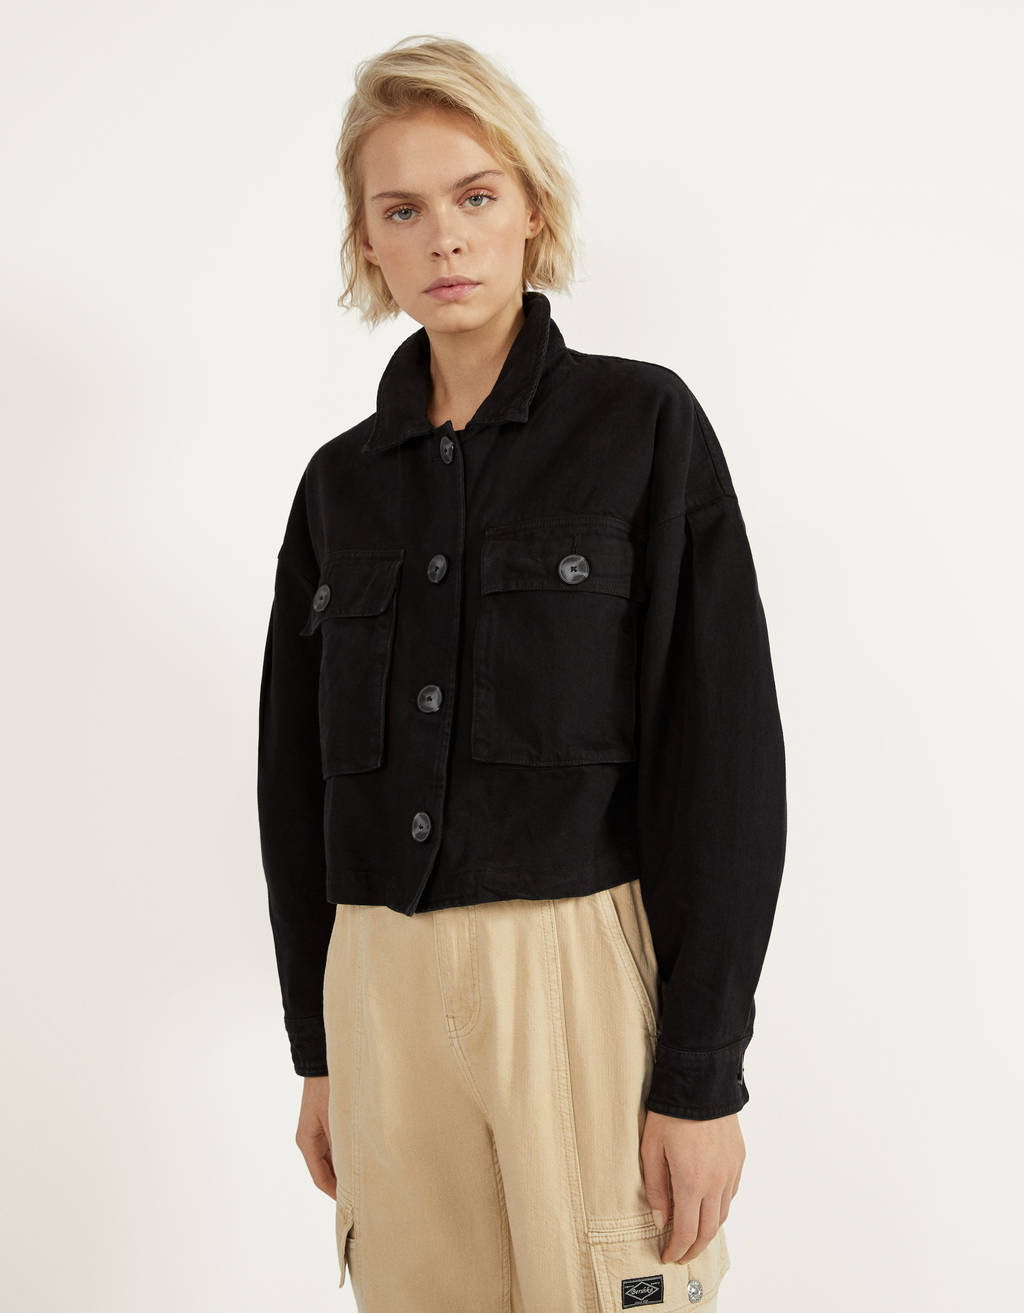 Utility jacket with puff sleeves